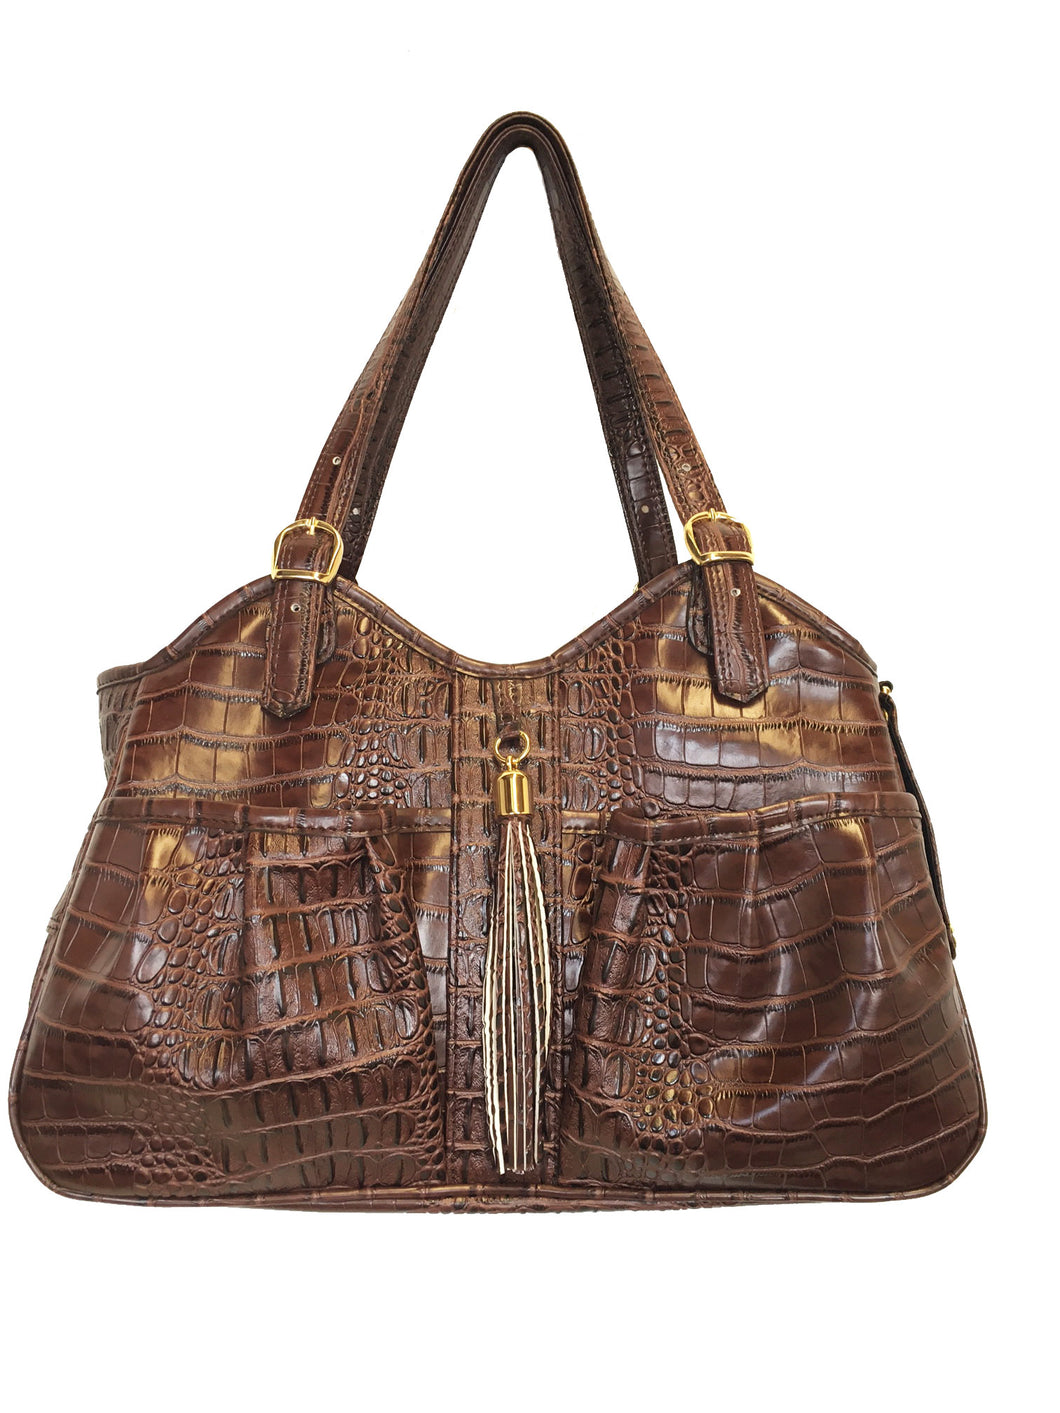 METRO BAG - BROWN CROCO